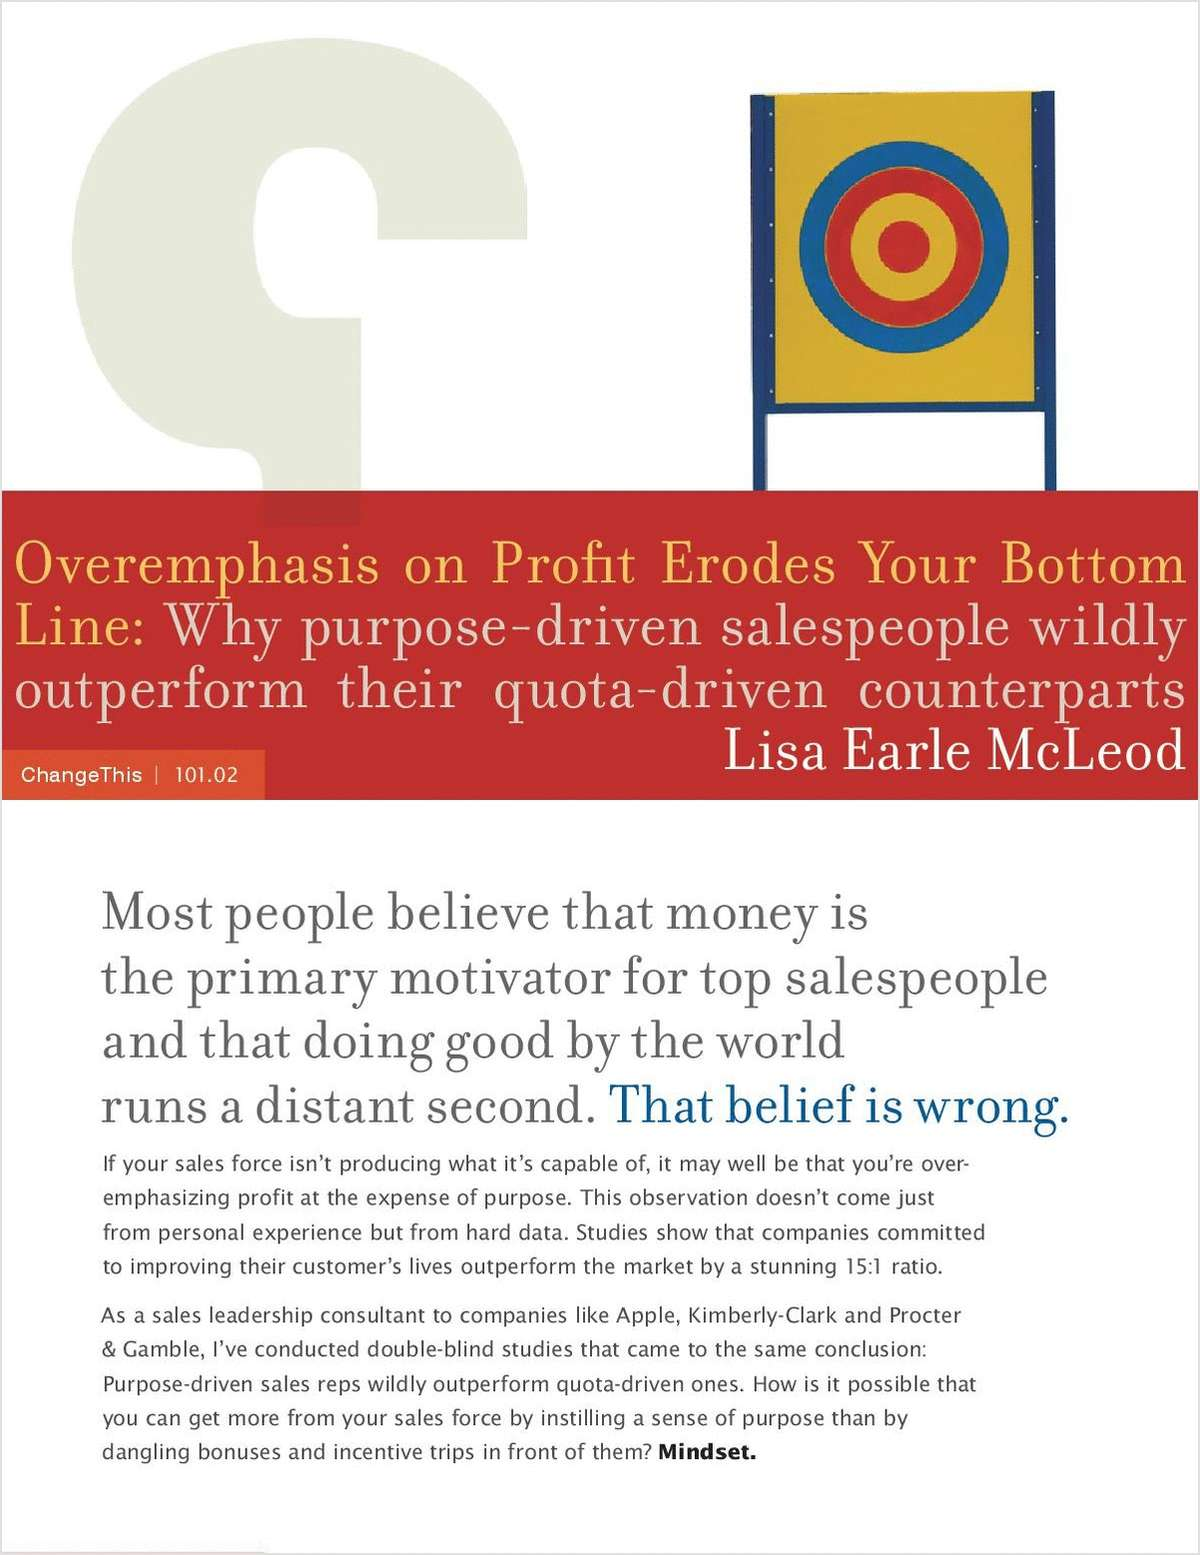 Overemphasis on Profit Erodes Your Bottom Line: Why purpose-driven salespeople wildly outperform their quota-driven counterparts